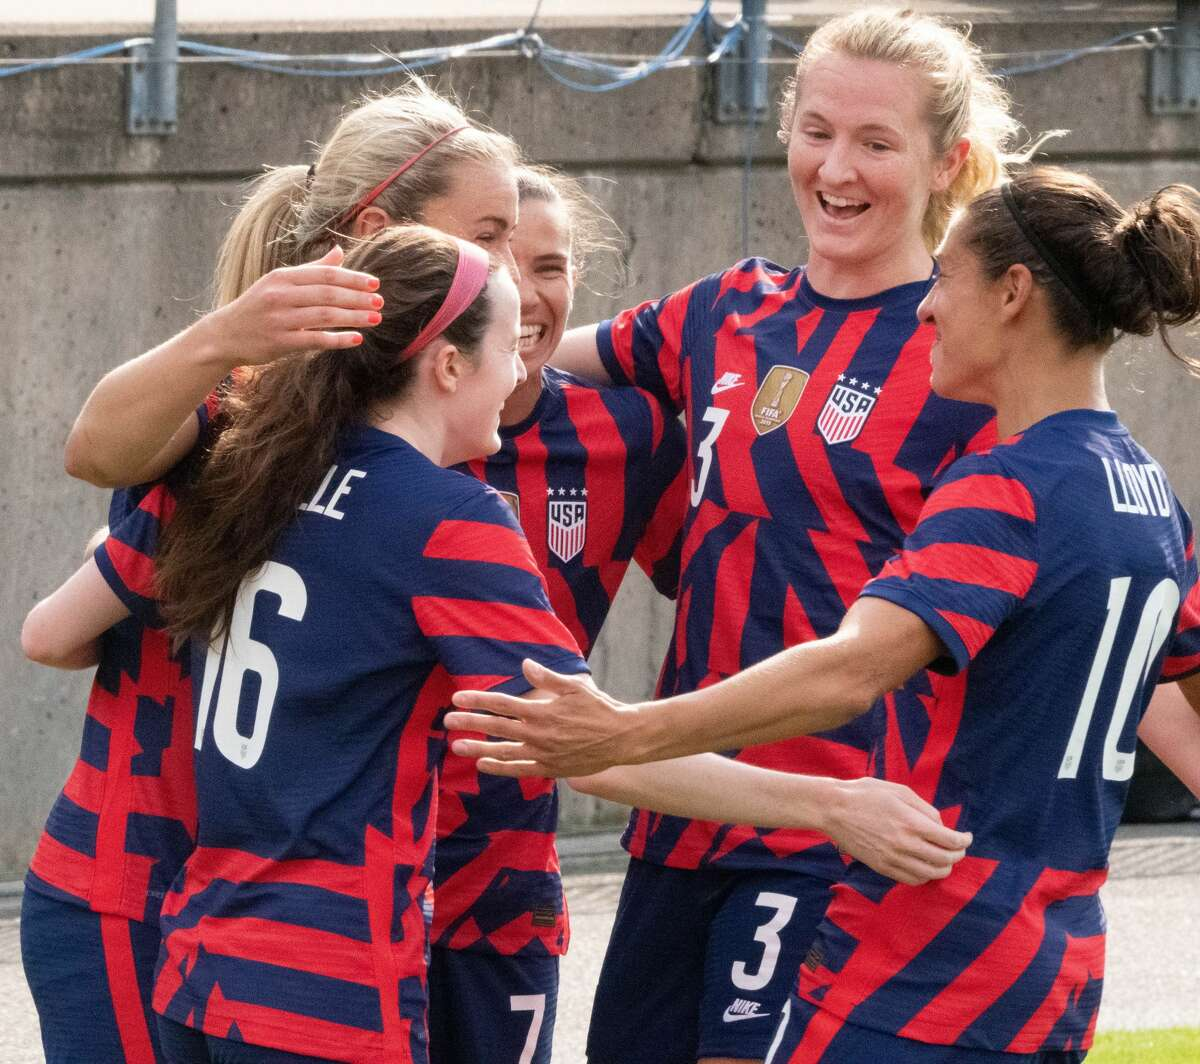 US Women's Soccer National Team members celebrate a goal in a Send-Off Series match against Mexico at Pratt & Whitney Stadium in East Hartford, Conn. on Monday, July 5, 2021. The U.S. won 4-0 over Mexico. (Joyce Bassett / Special to the Times Union)